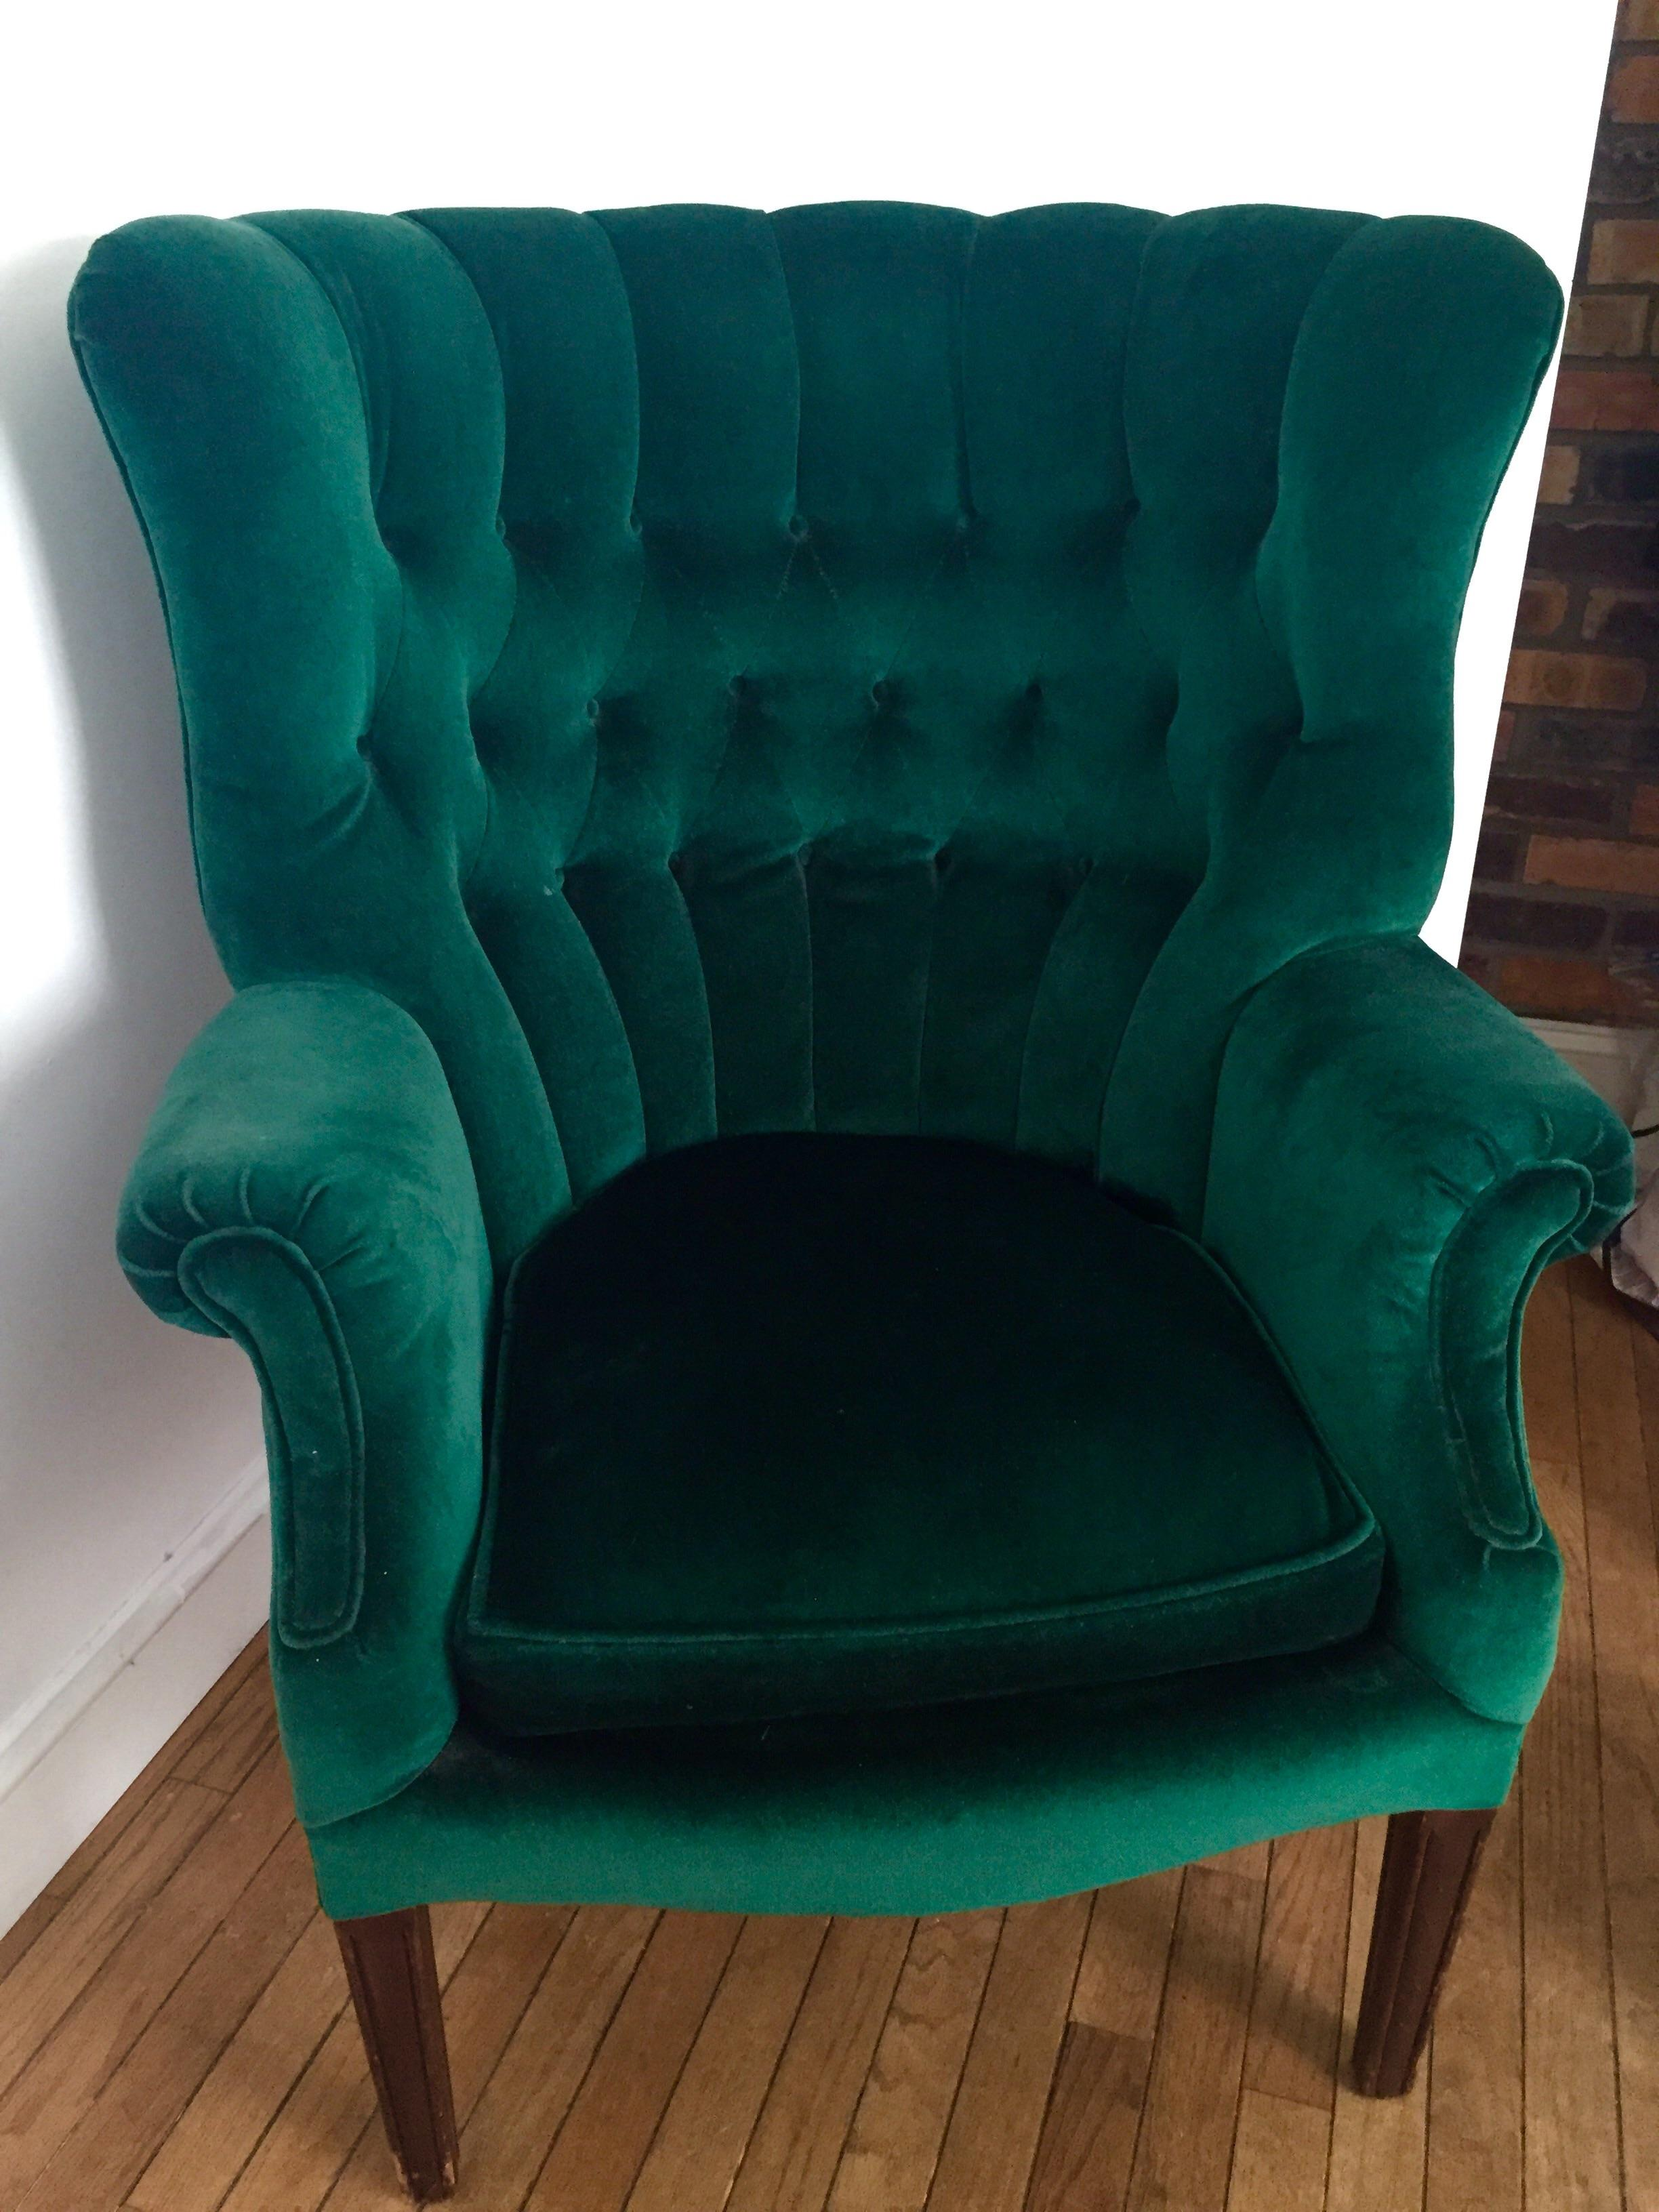 Vintage Emerald Green Armchair   Image 3 Of 4